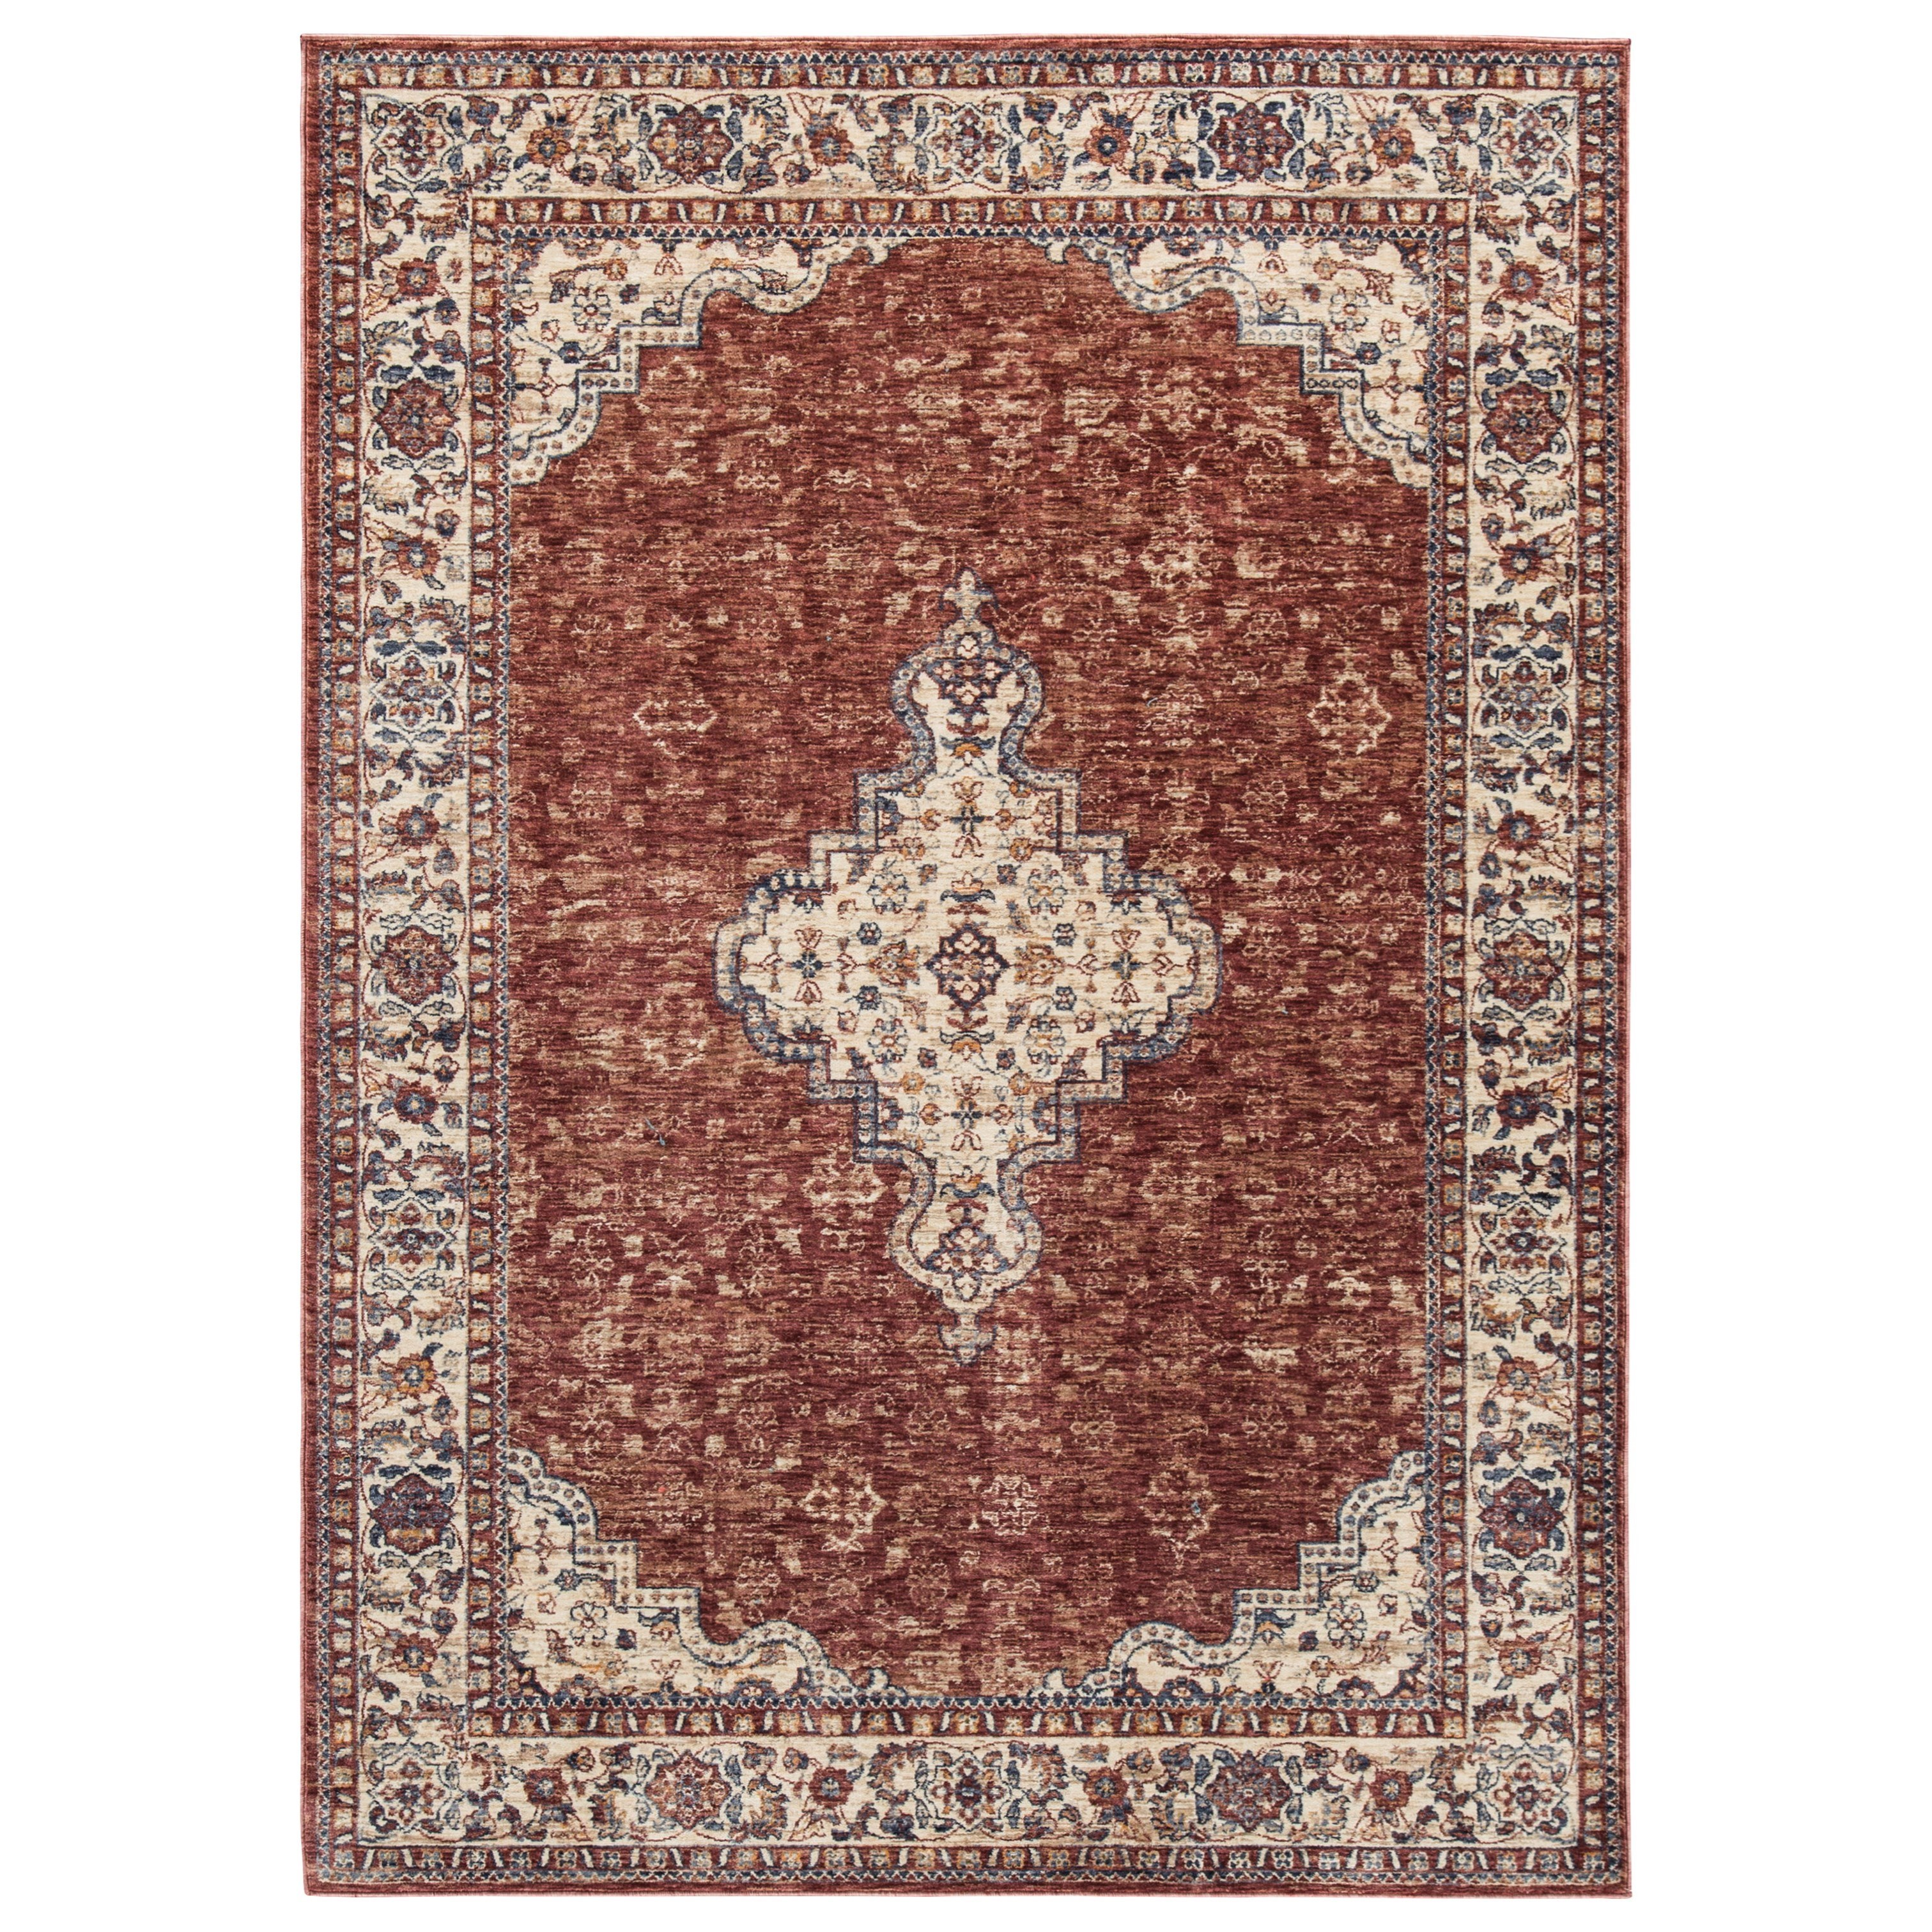 Traditional Classics Area Rugs Haydrien Red Medium Rug by Signature Design by Ashley at Coconis Furniture & Mattress 1st